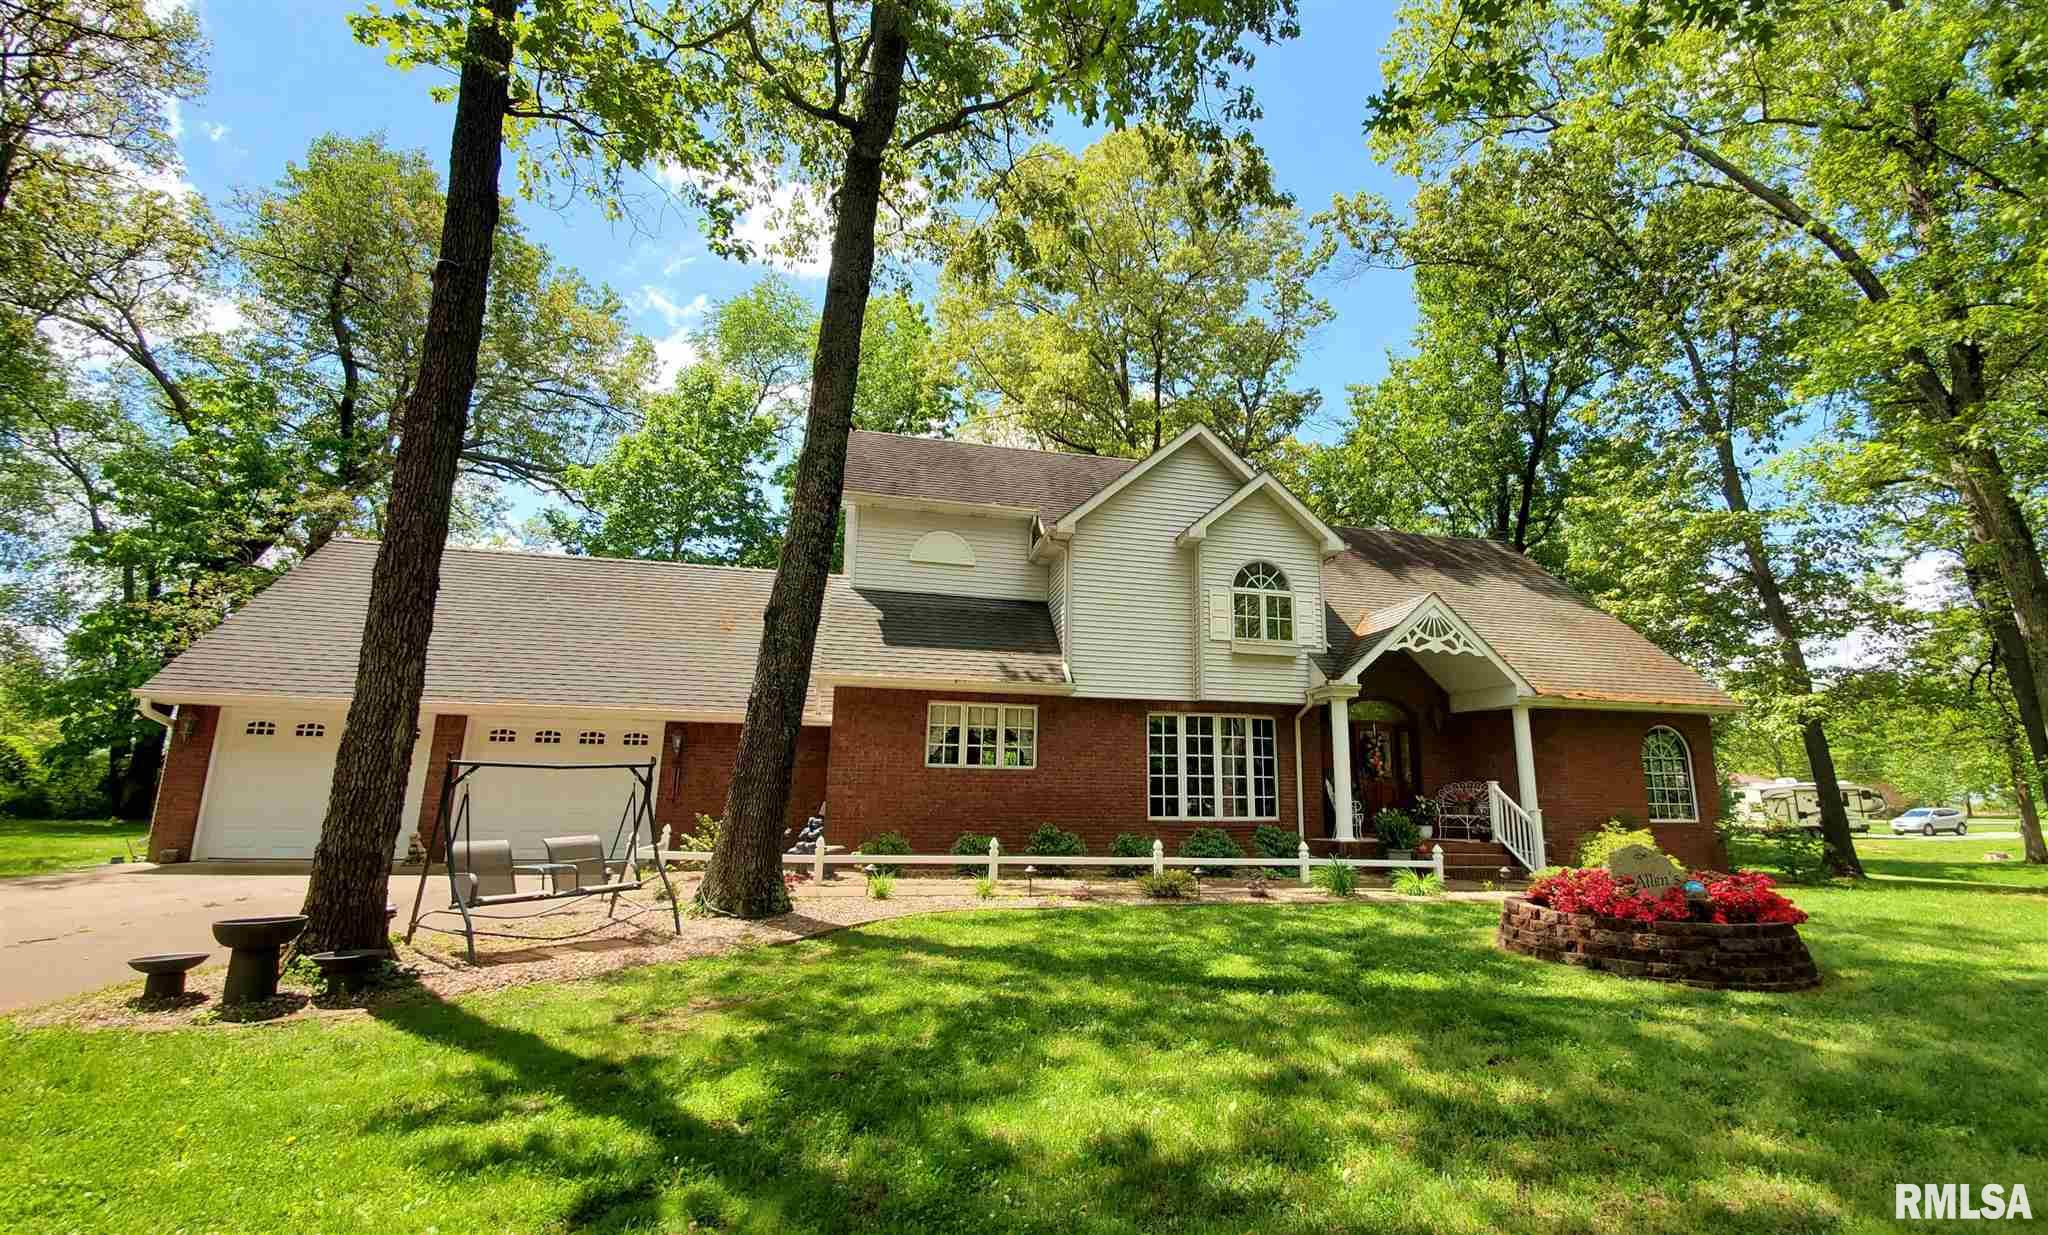 605 S WOODLAND Property Photo - McLeansboro, IL real estate listing